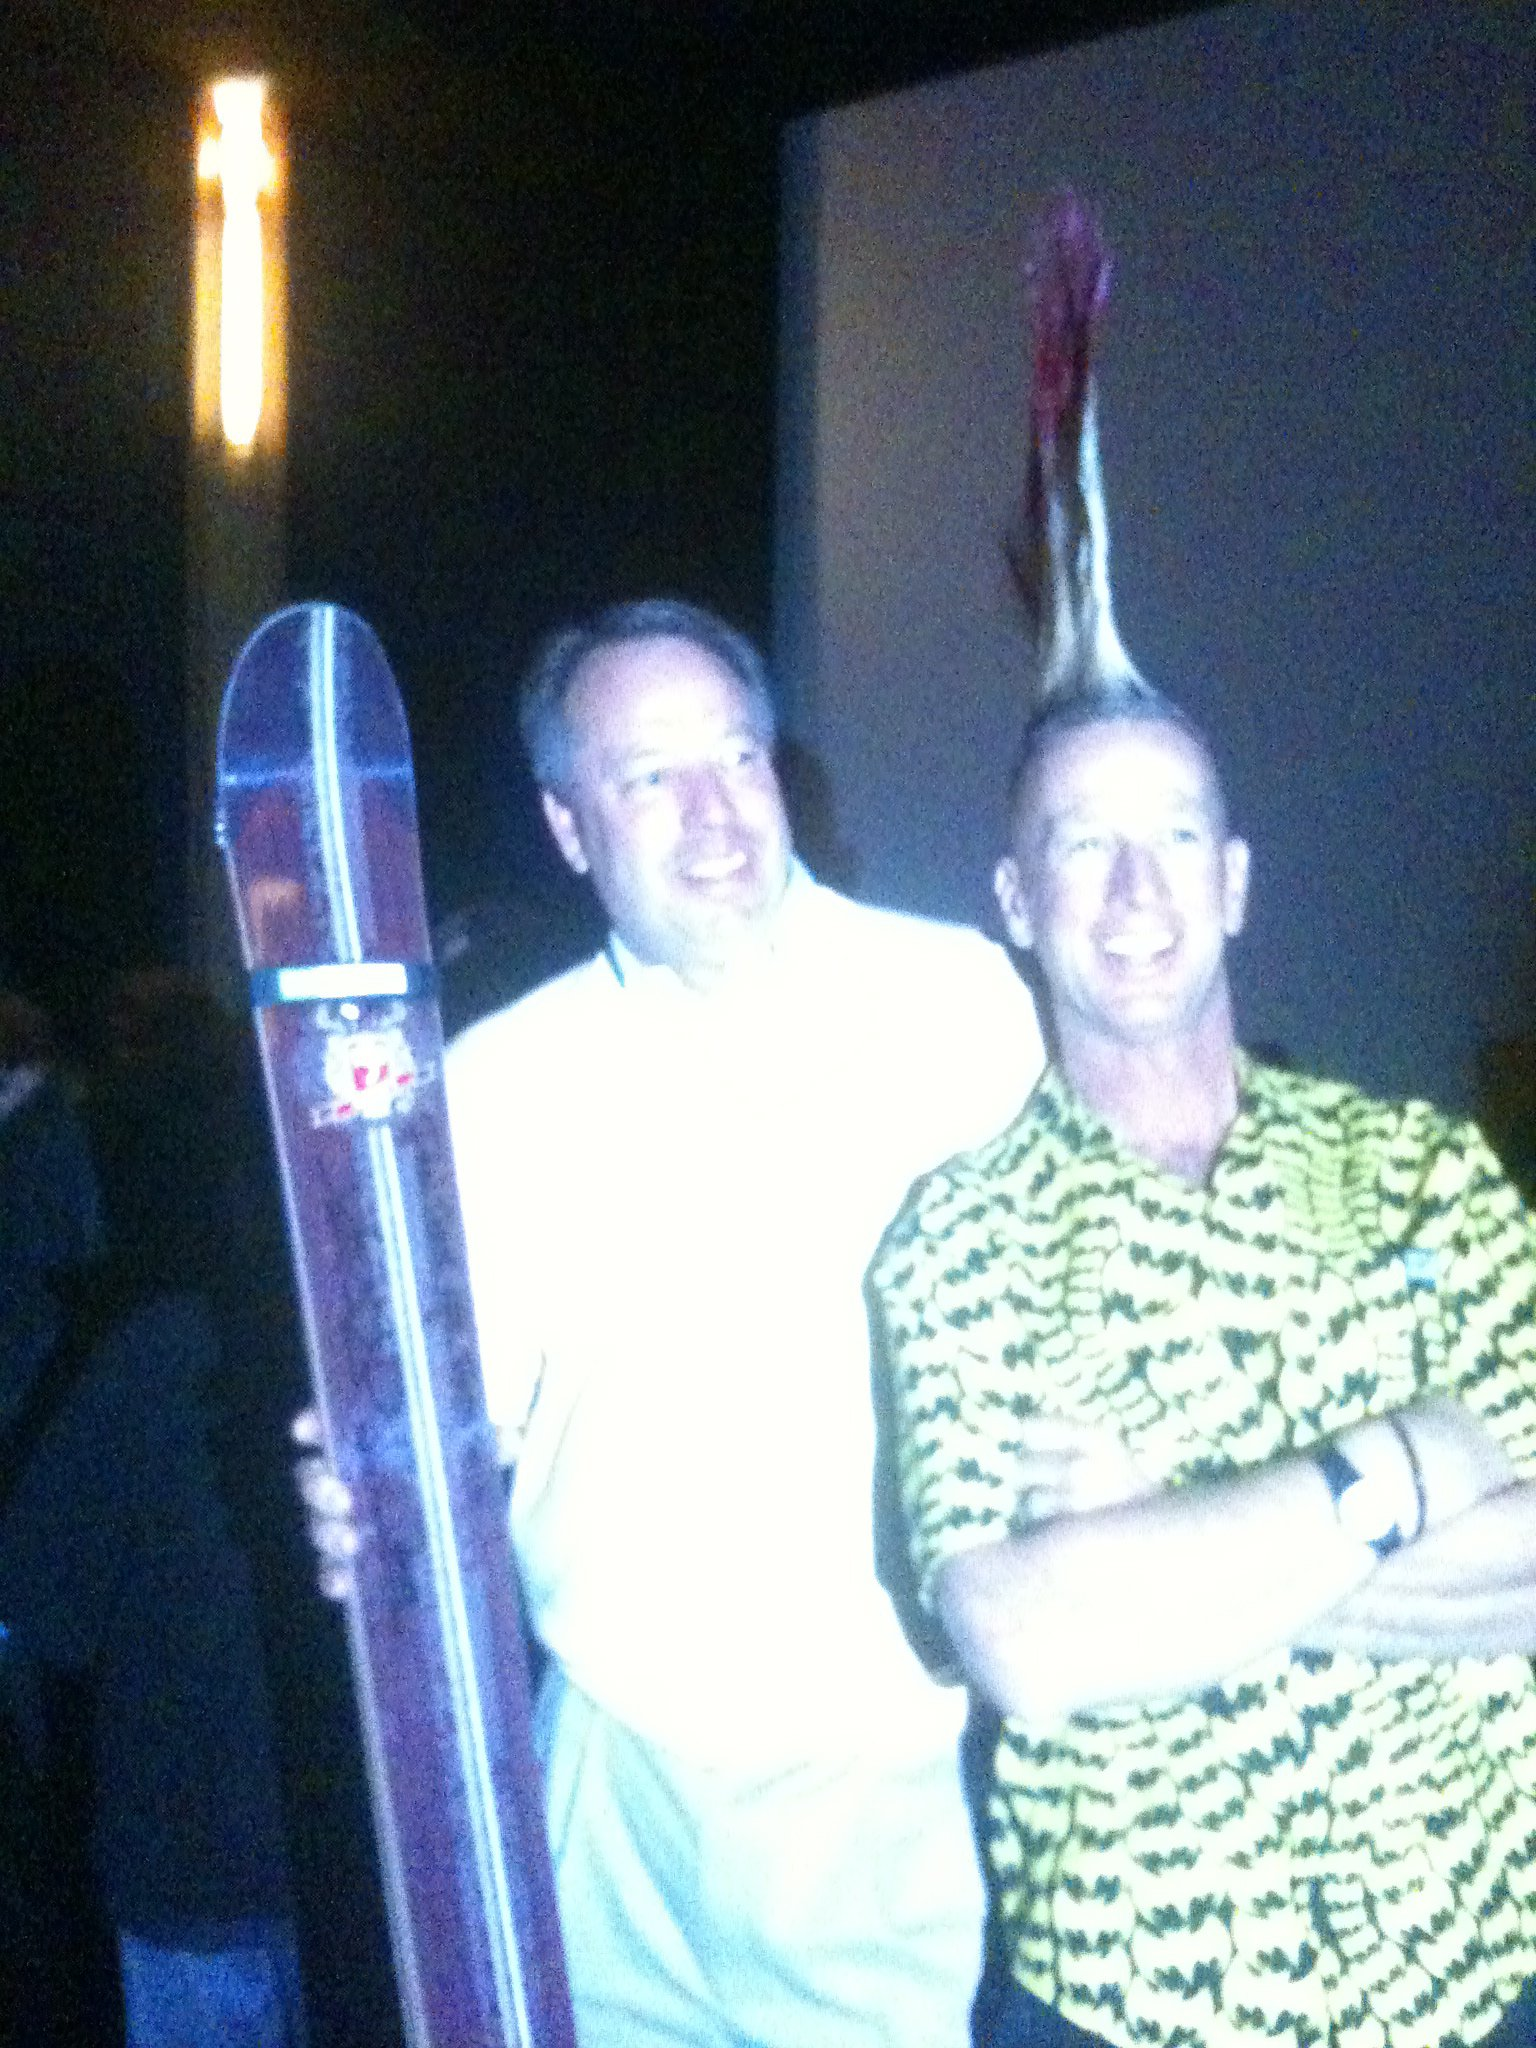 My dad and glen plake and the skis he won